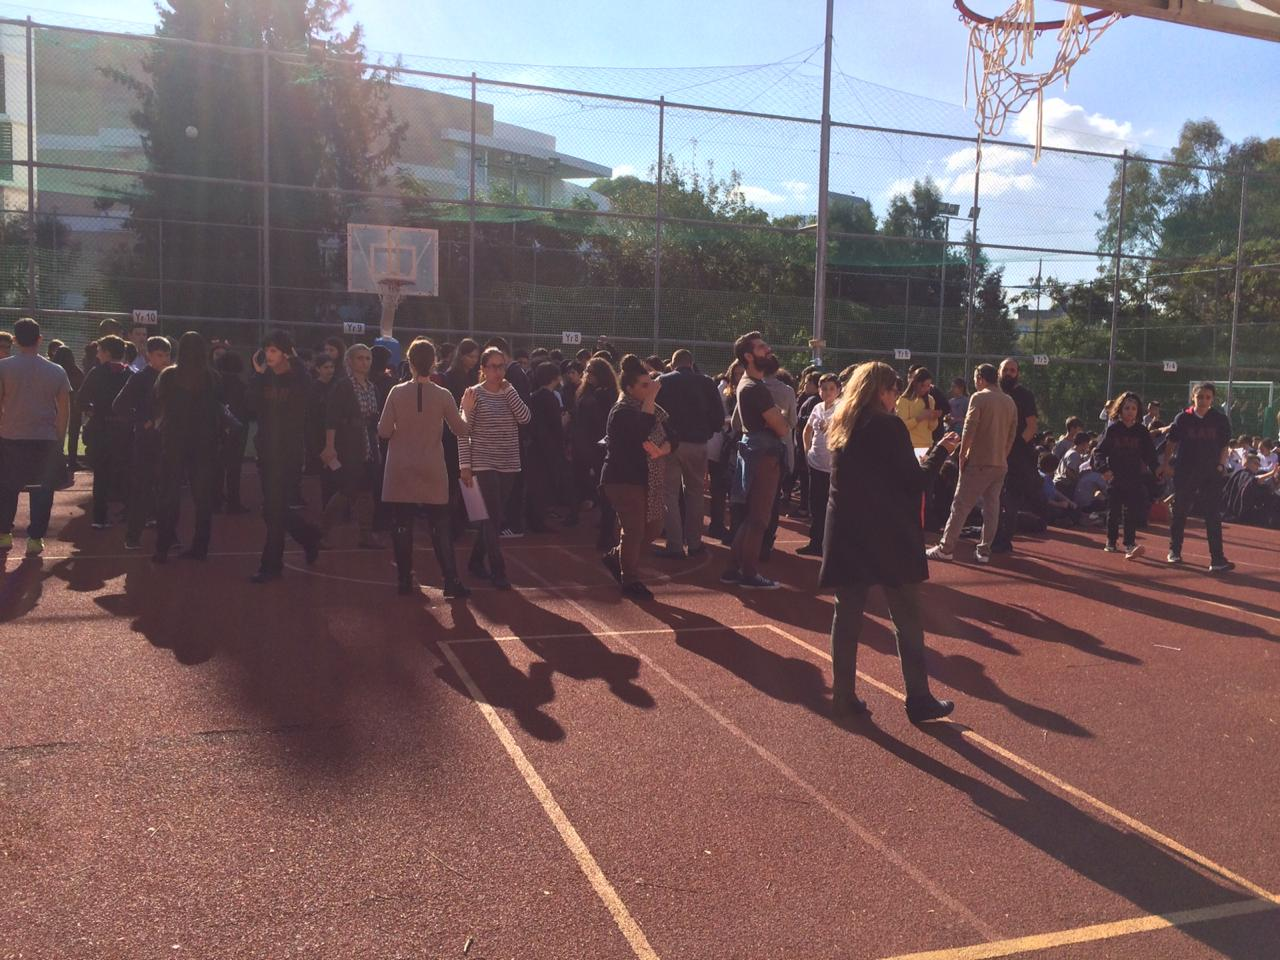 Bomb scare at American academy school in Nicosia, Cyprus. School evacuated 30